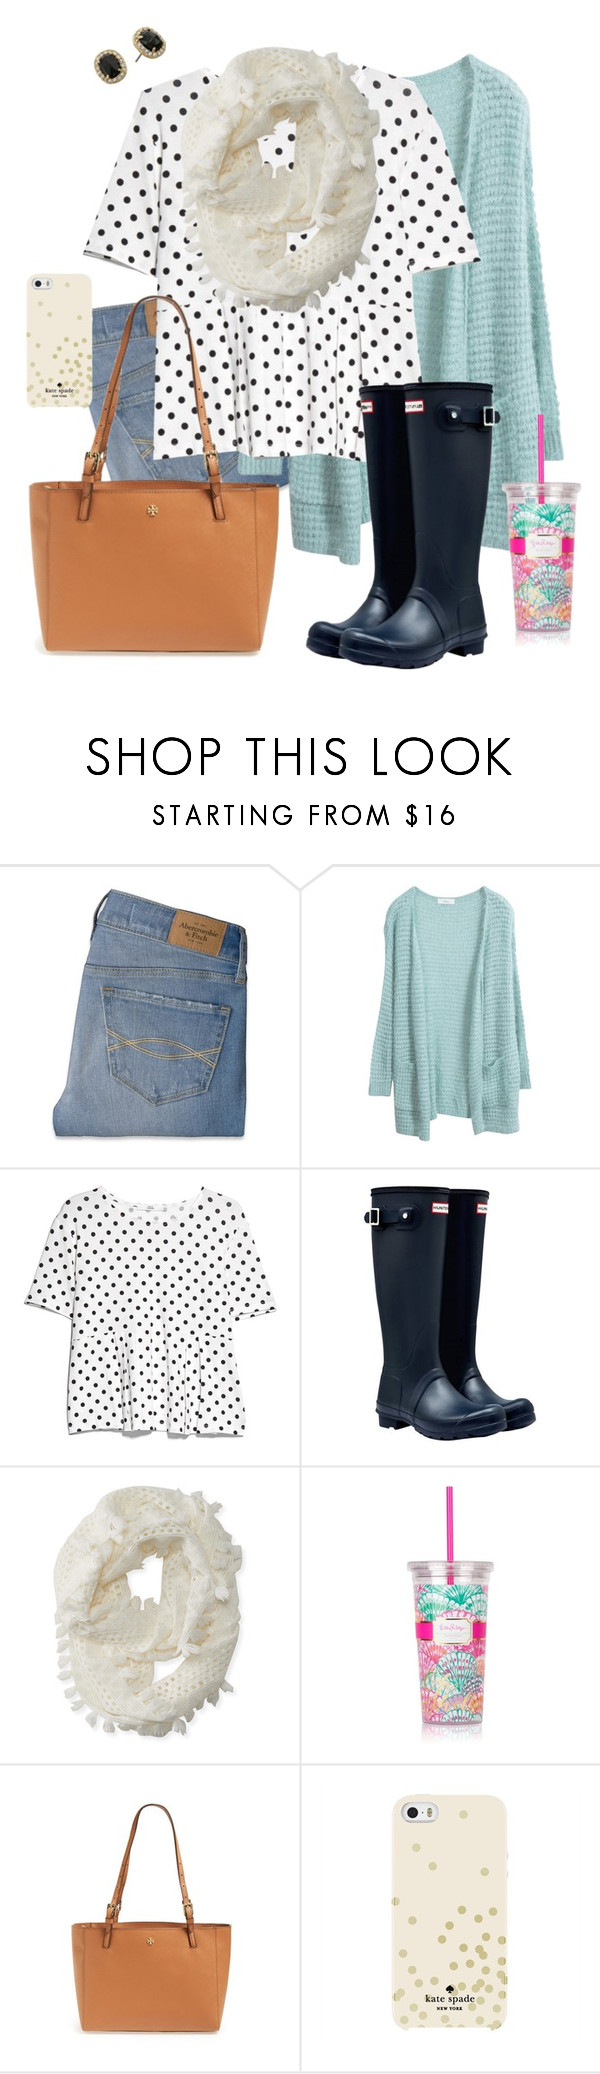 """""""KATIE"""" by southrnblle ❤ liked on Polyvore featuring Abercrombie & Fitch, MANGO, Hunter, Aéropostale, Lilly Pulitzer, Tory Burch and Kate Spade"""